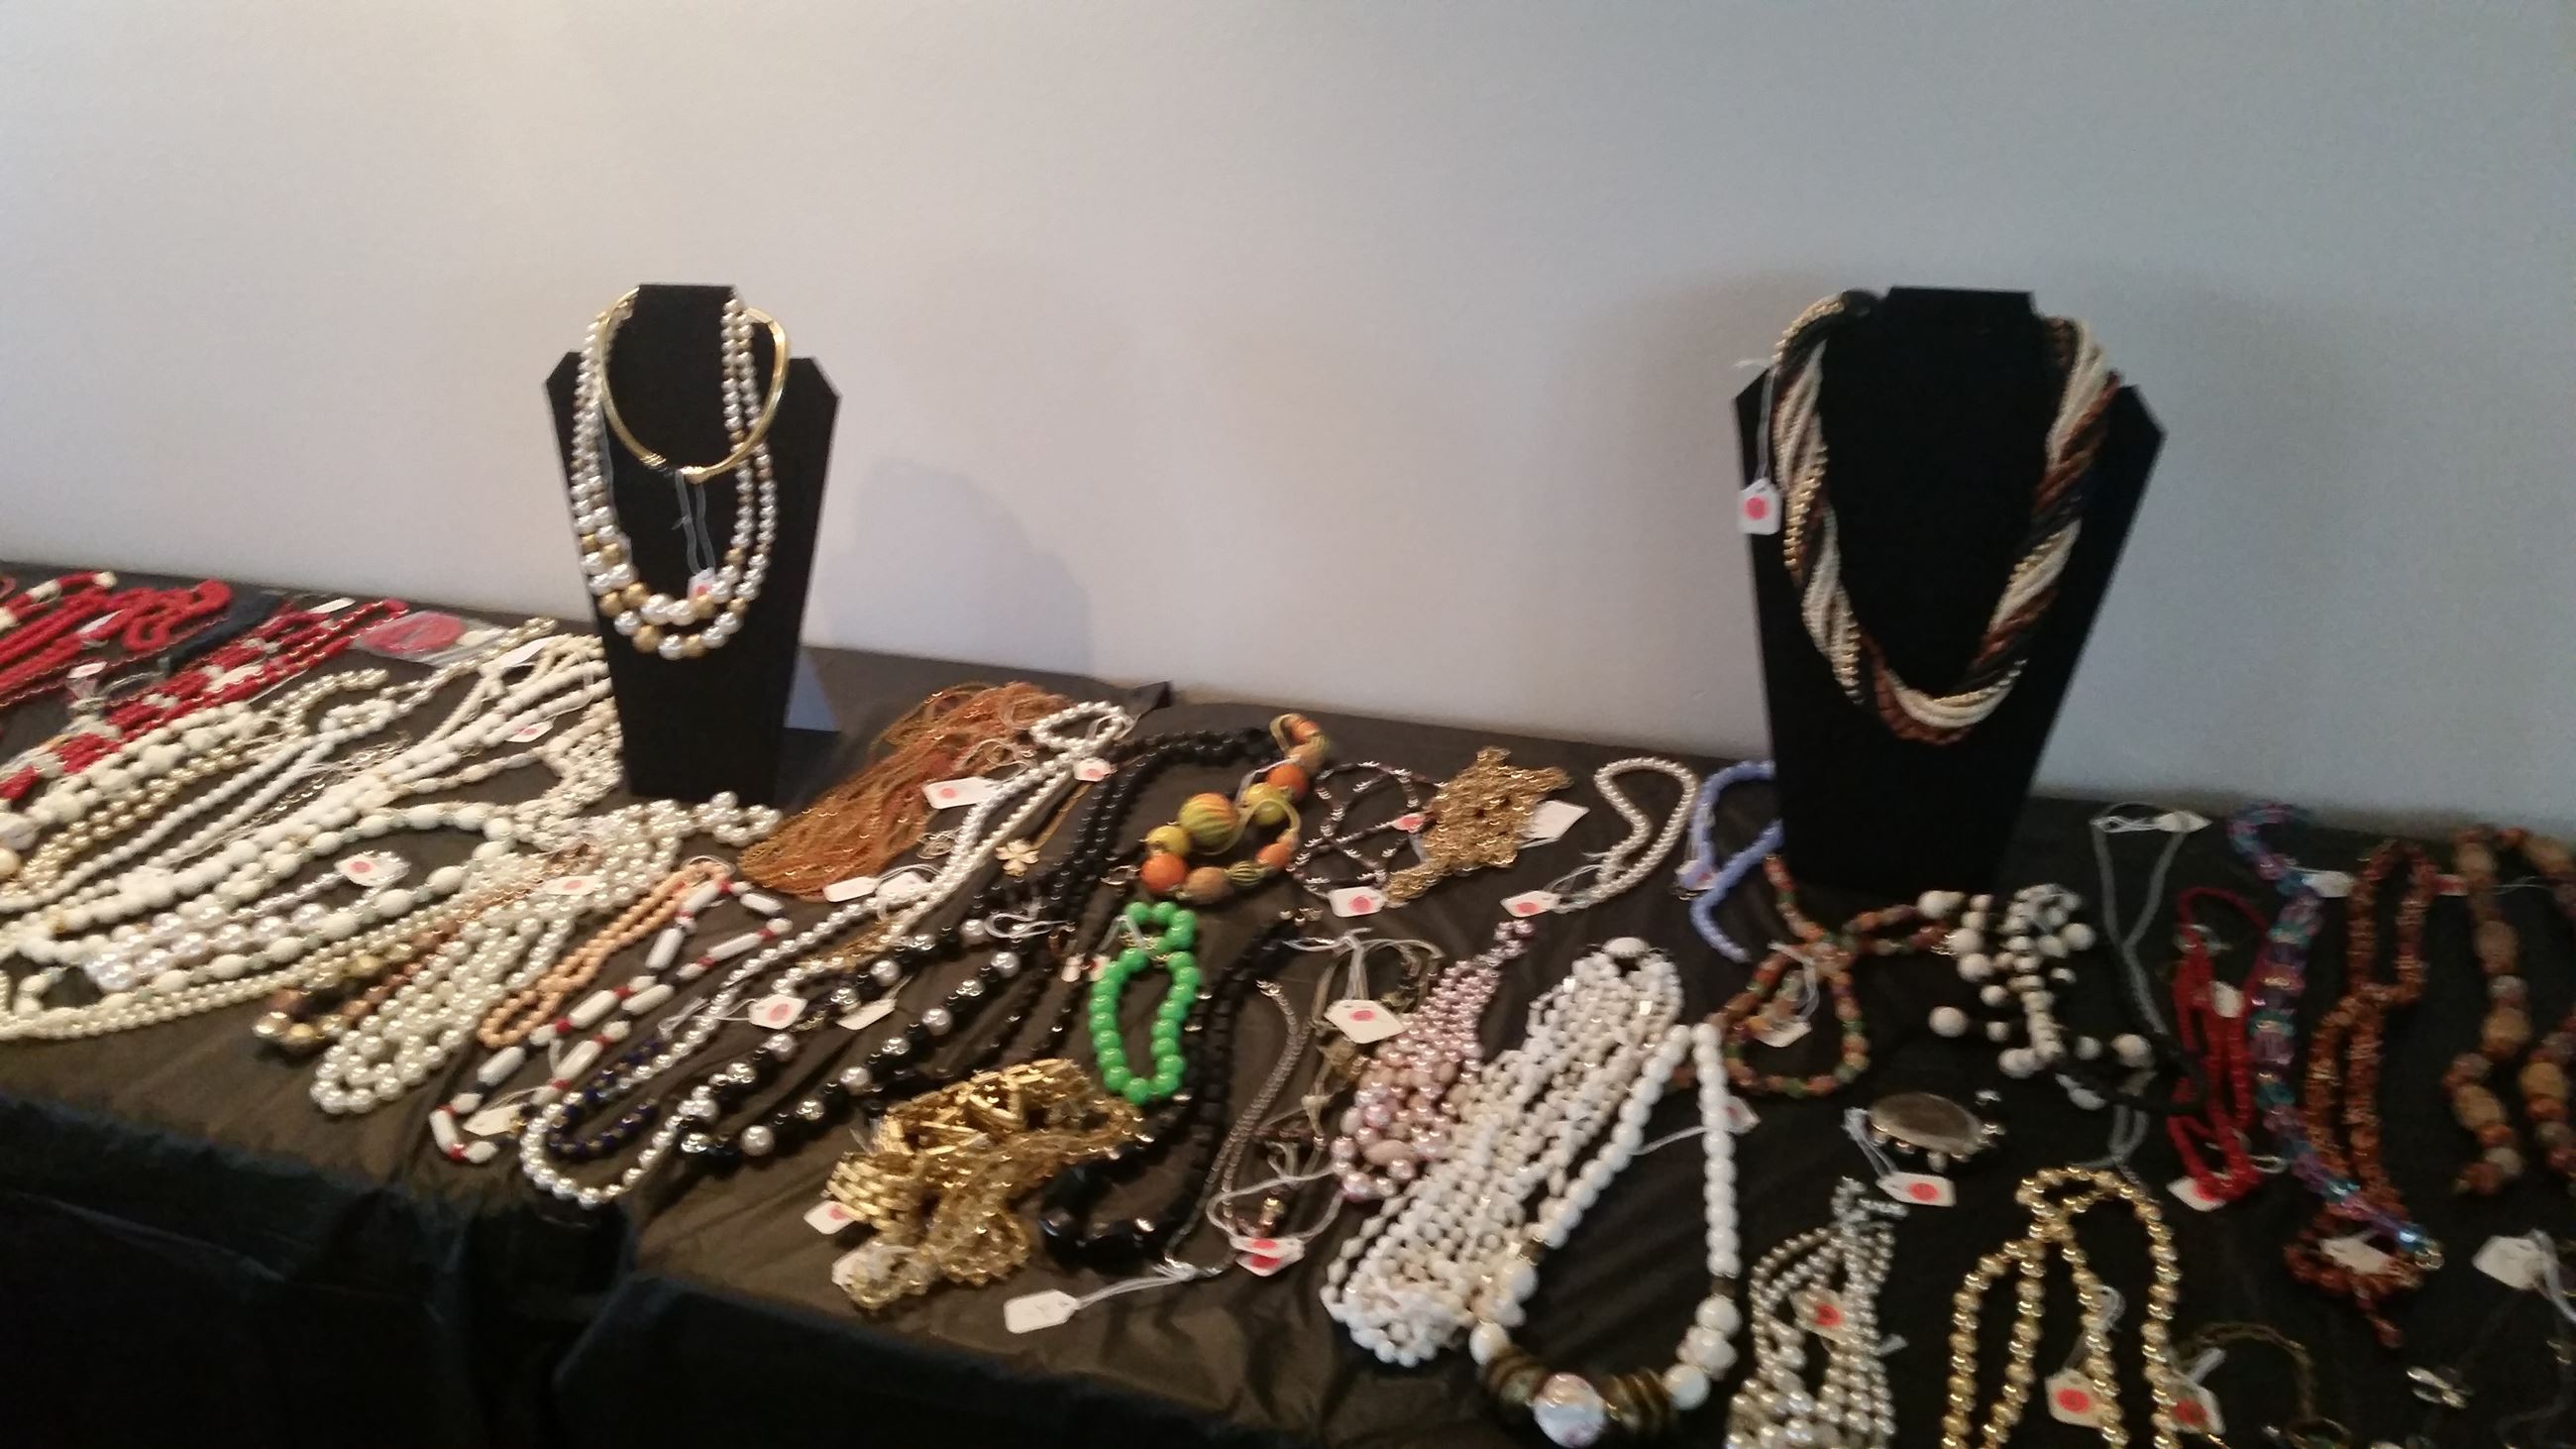 Table displaying jewelry pieces